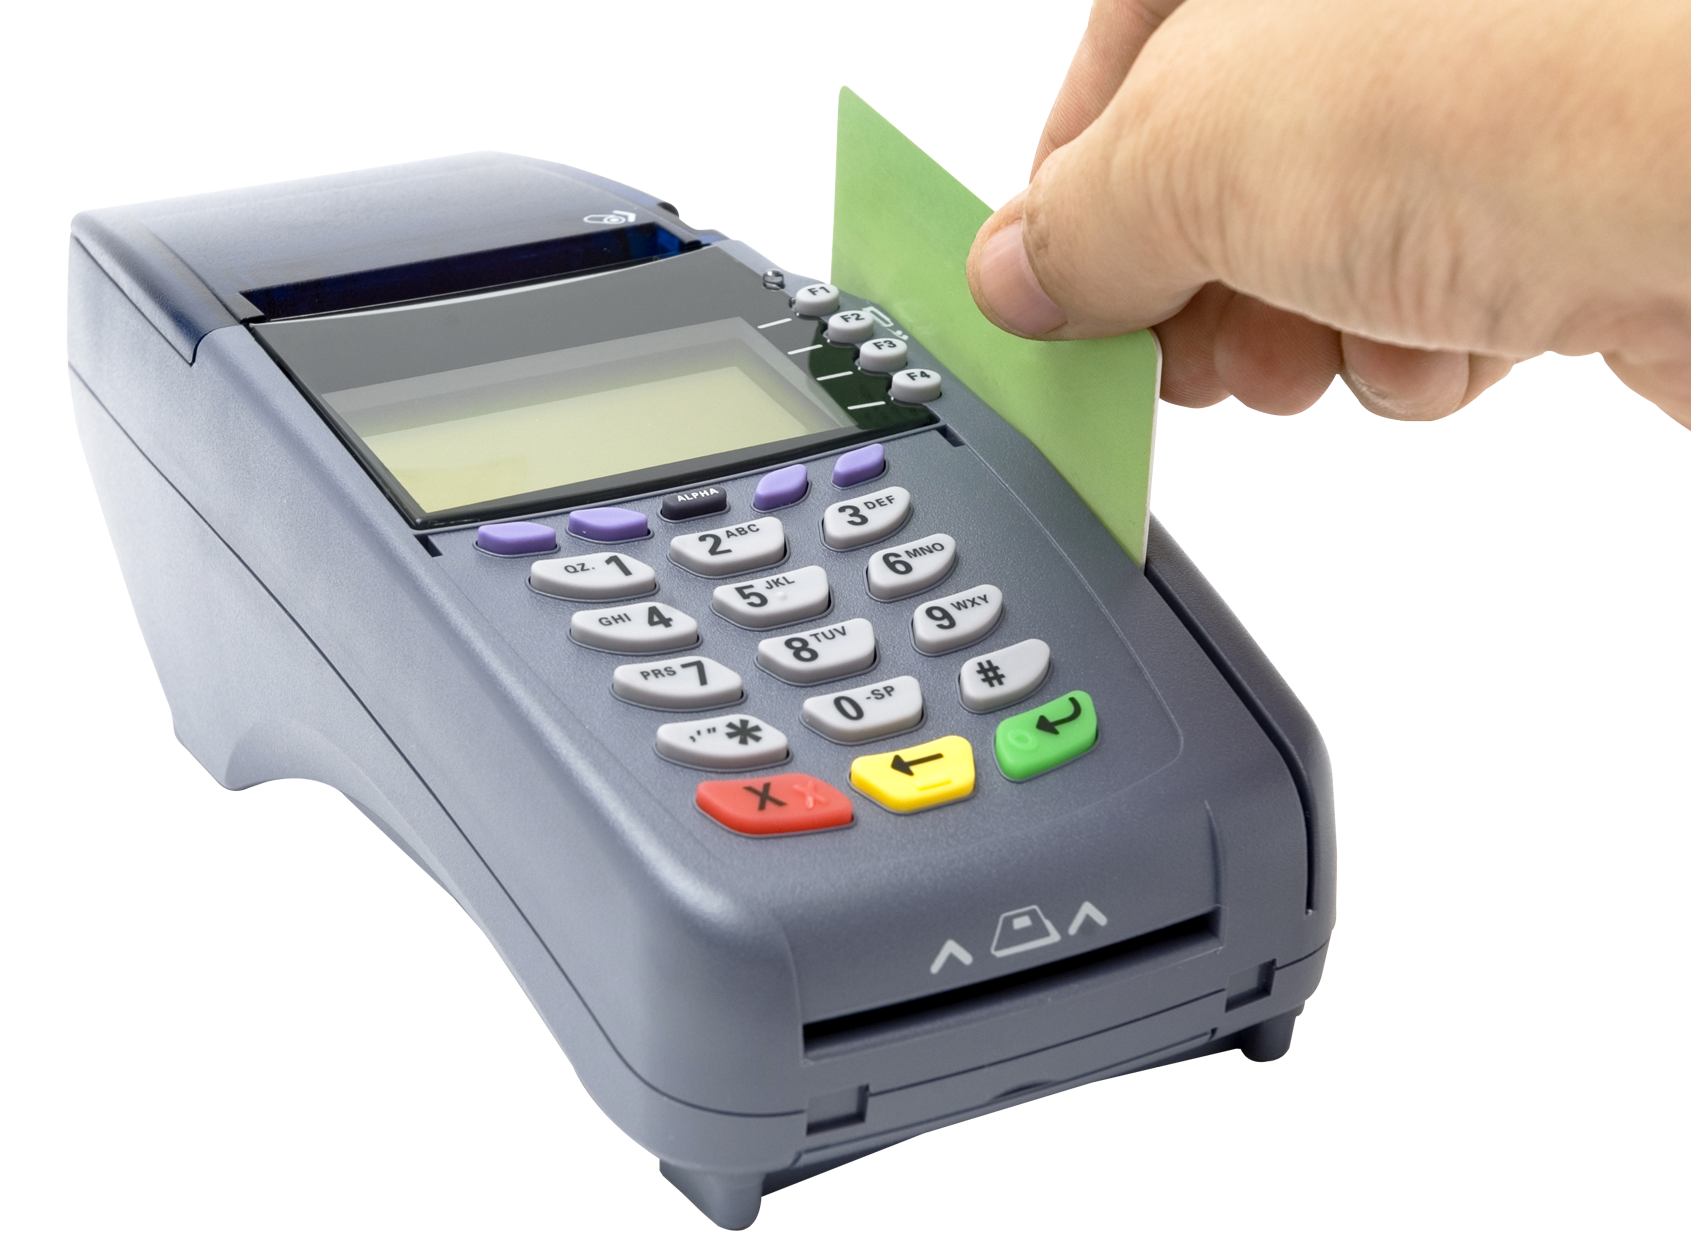 credit card reader png image purepng free transparent cc0 png